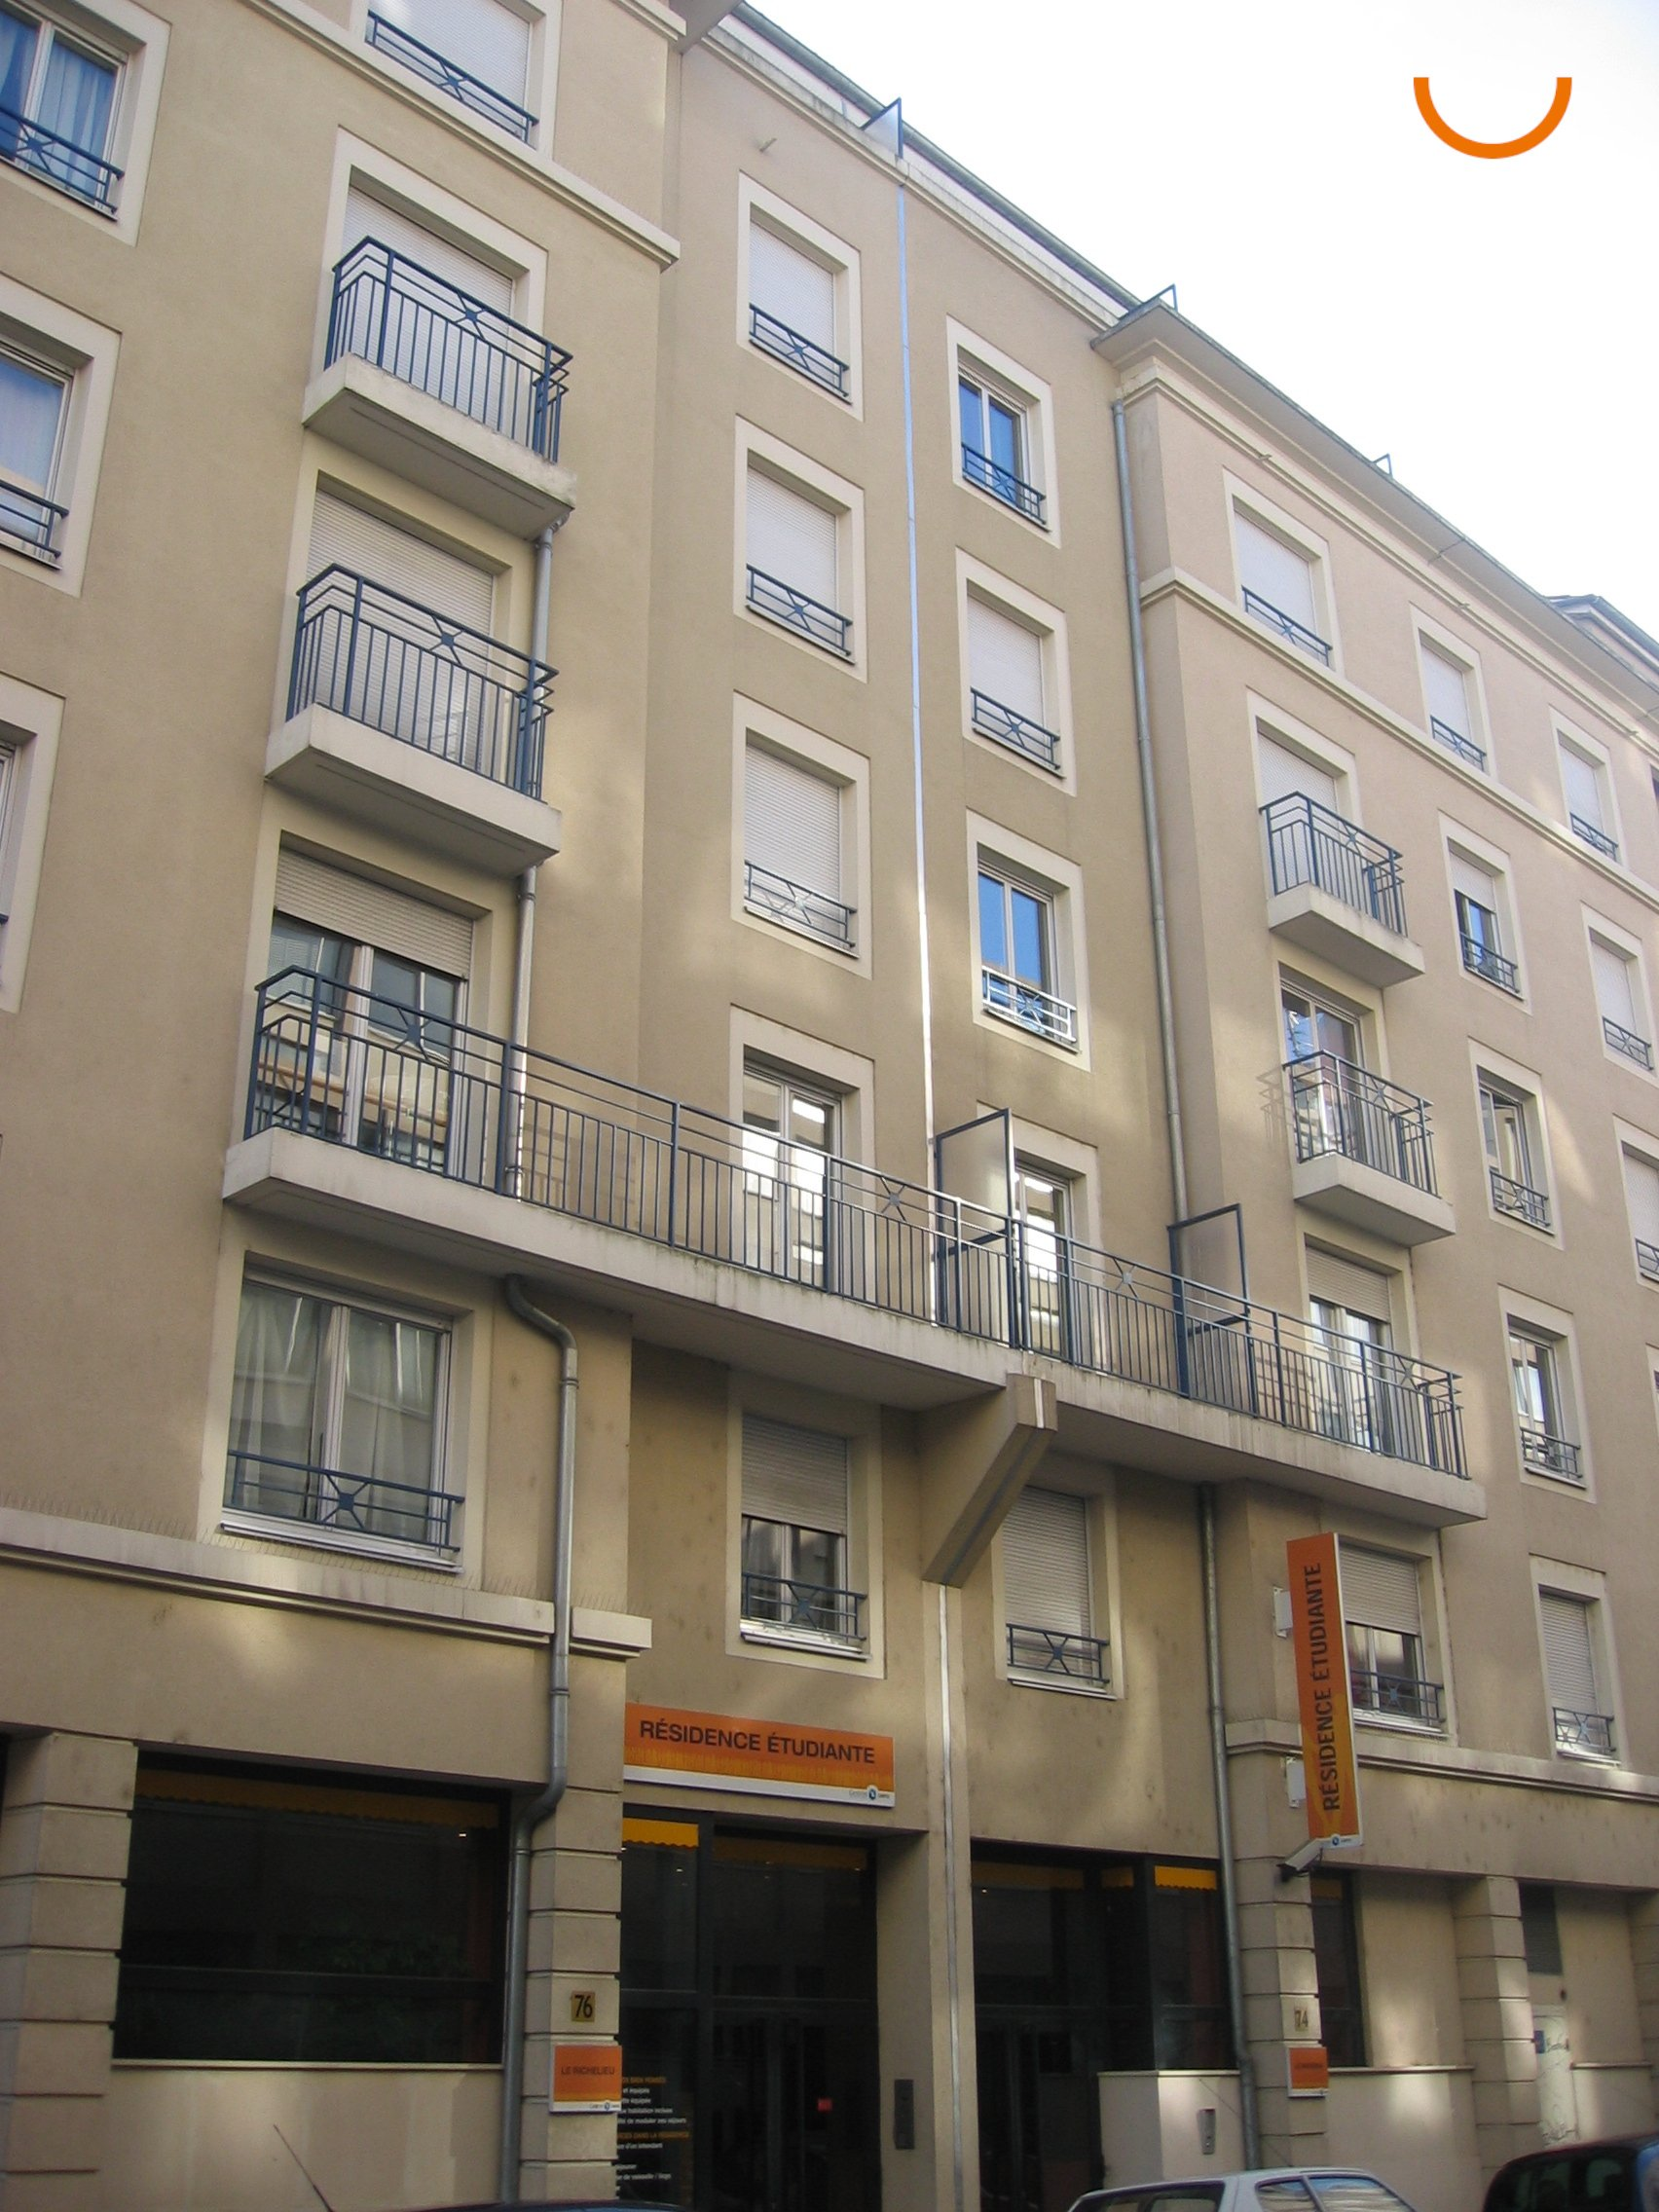 Location appartement Lyon 06, 32.62m²